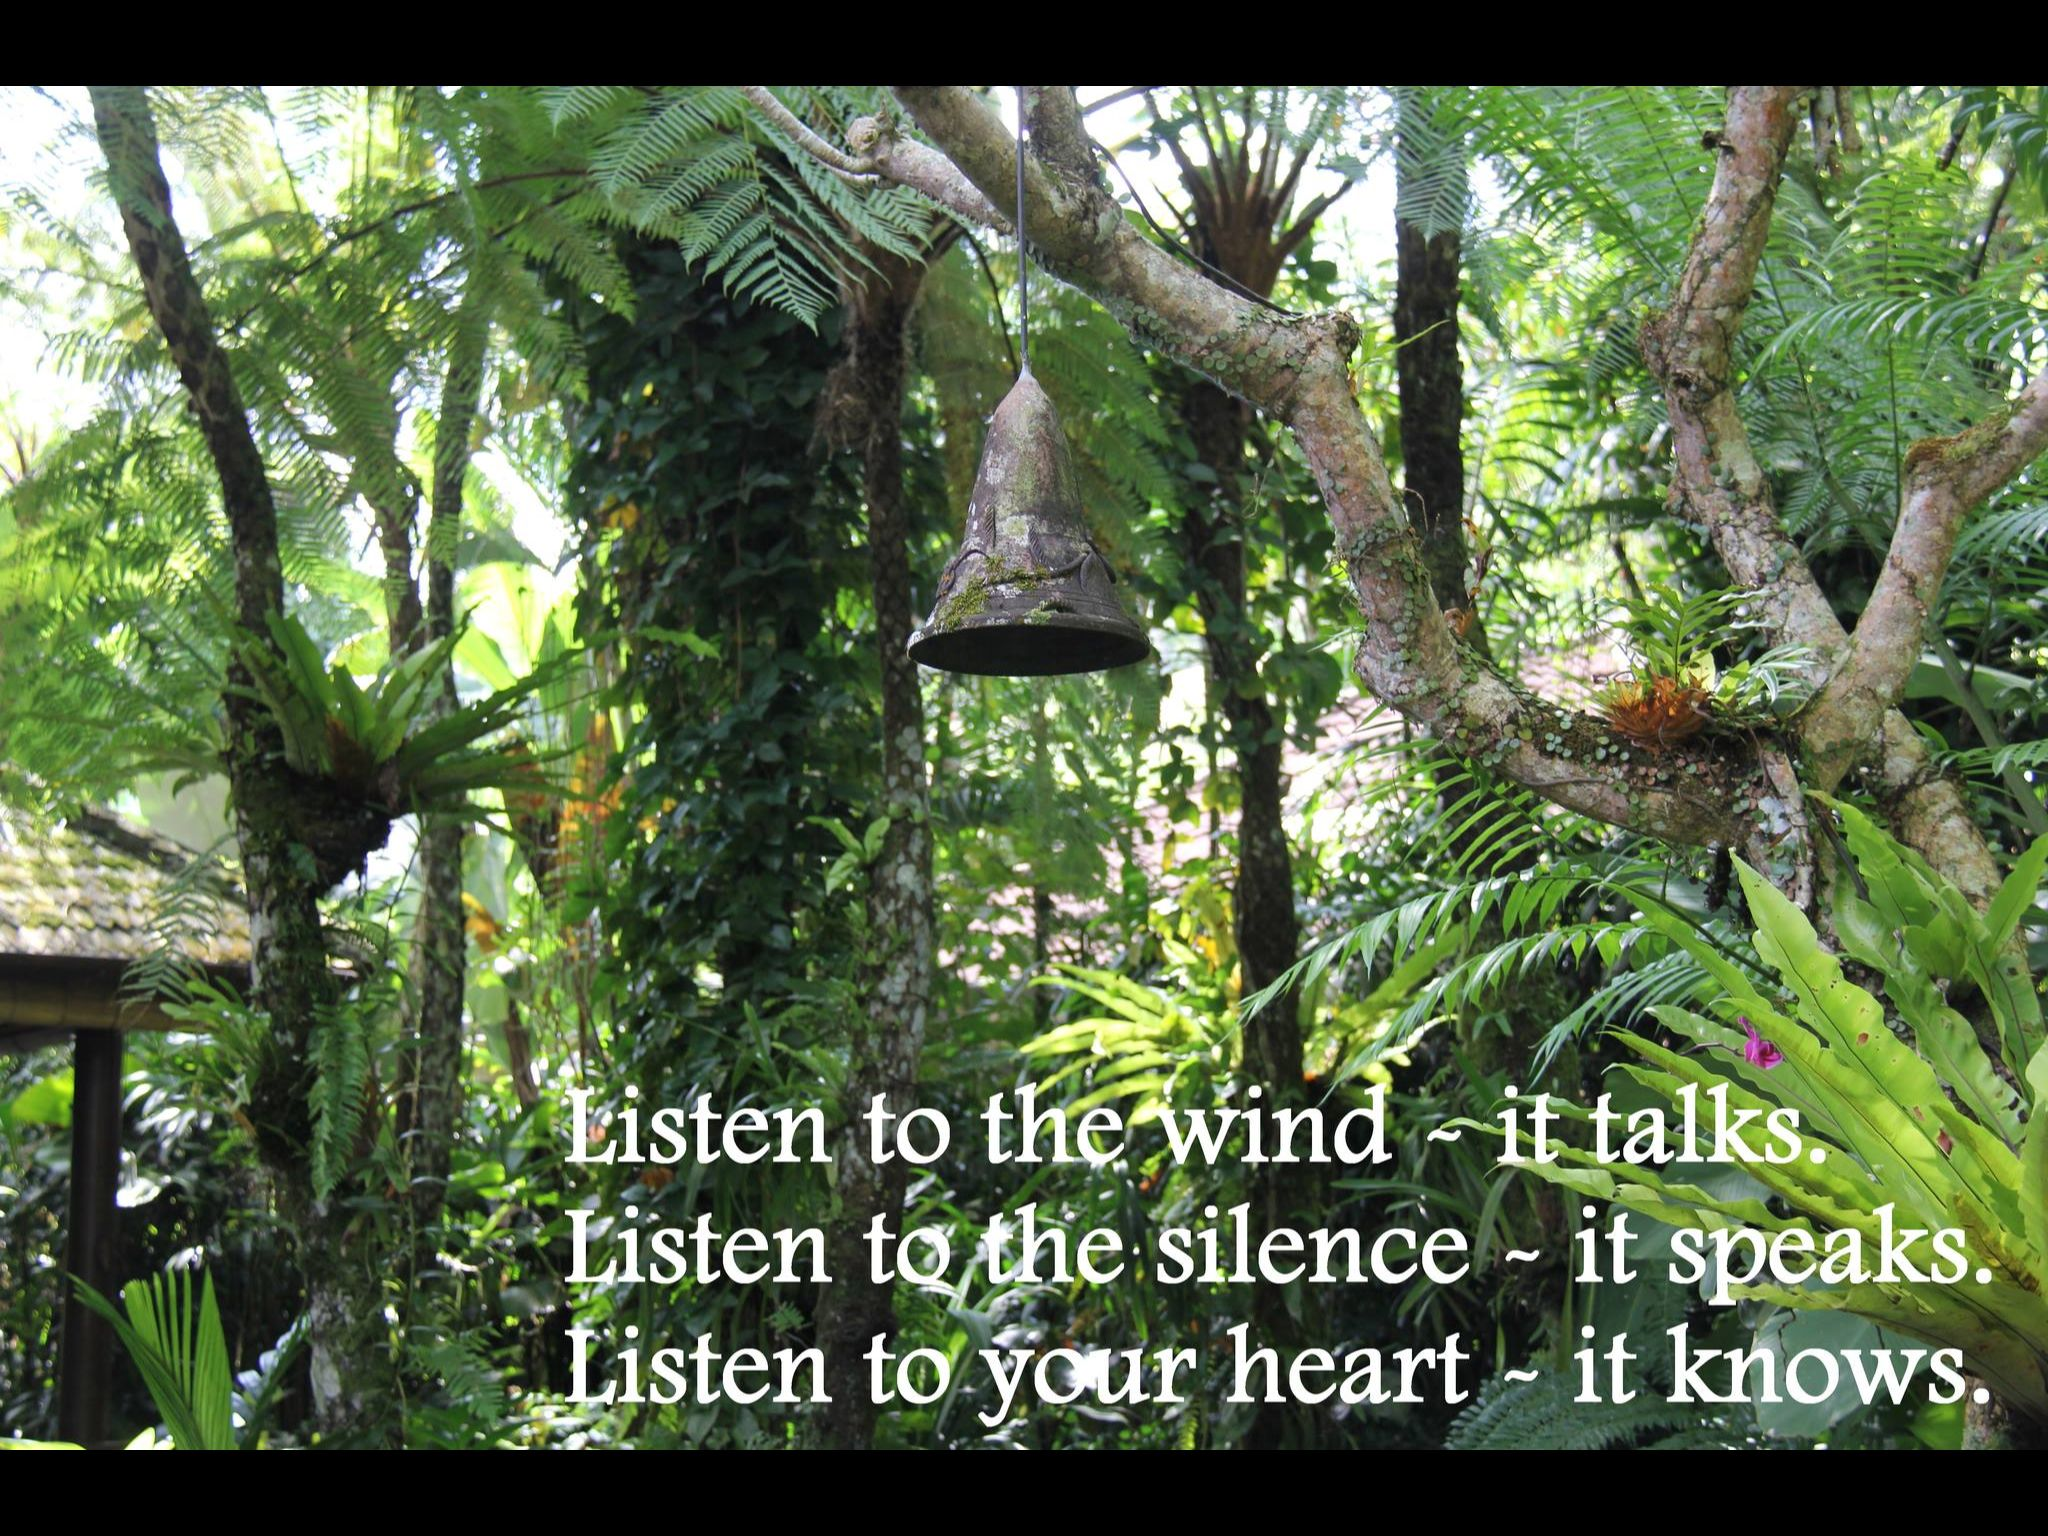 Listen to the wind ~ it talks. Listen to the silence ~ it speaks. Listen to your heart ~ it knows.